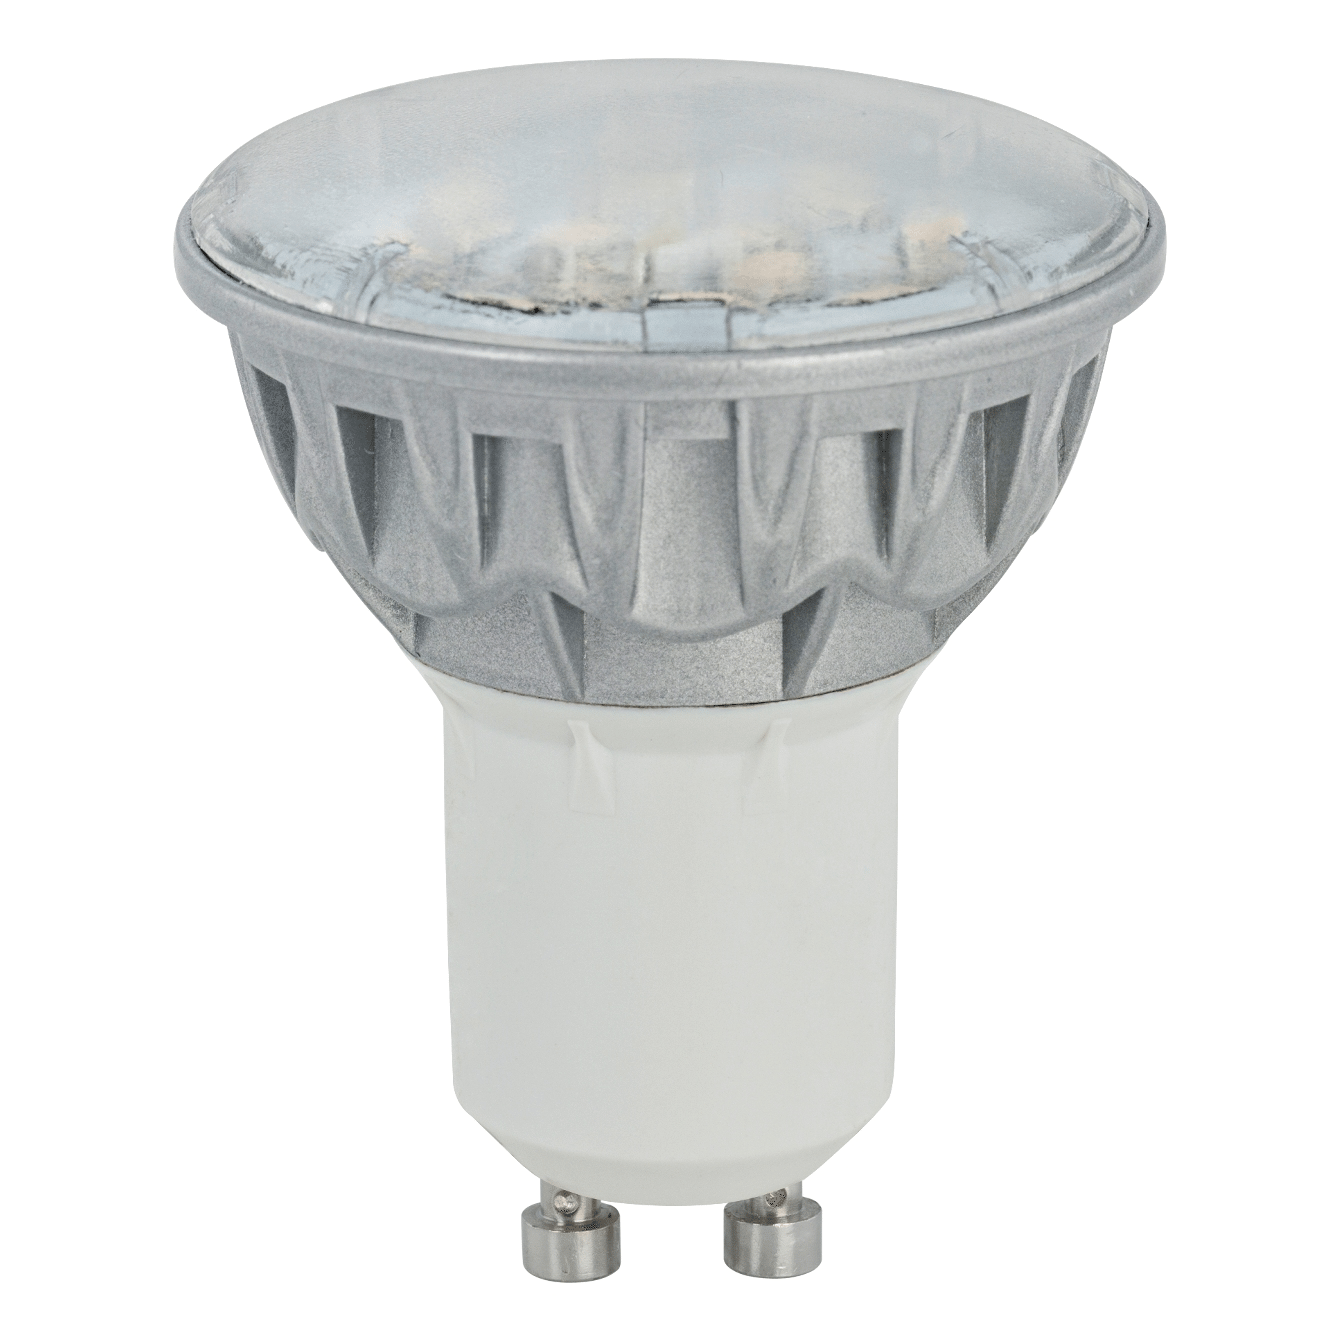 LED sijalica 5W - 11423